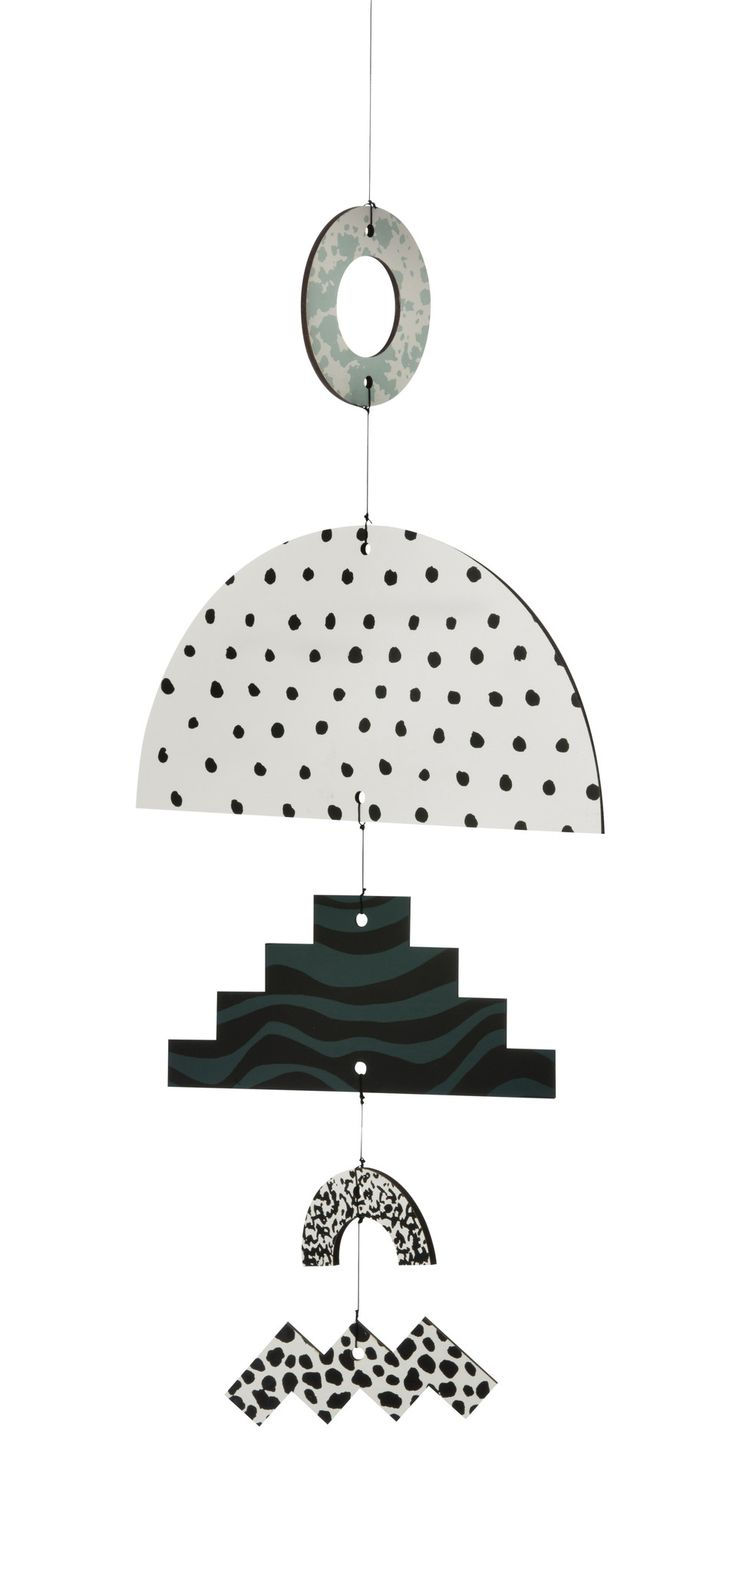 This decorative mobile is a collaboration between Elkeland and ferm LIVING. Each side has a different print with the characteristic Elkeland signature, making sure to add an artistic touch to your per